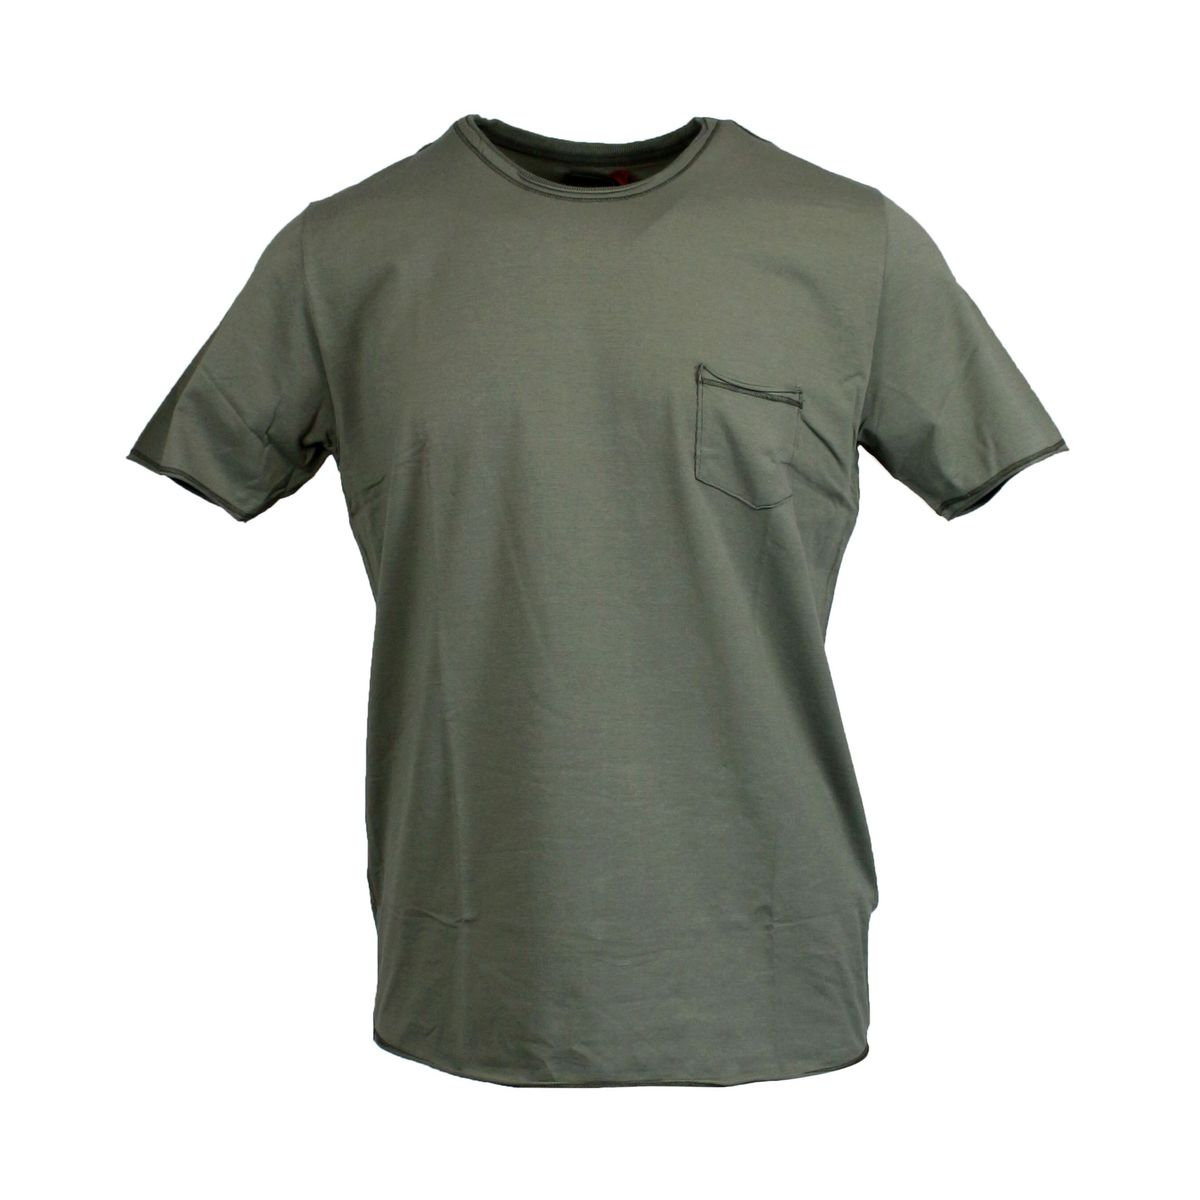 crewneck t-shirt with pocket Olive GRAN SASSO